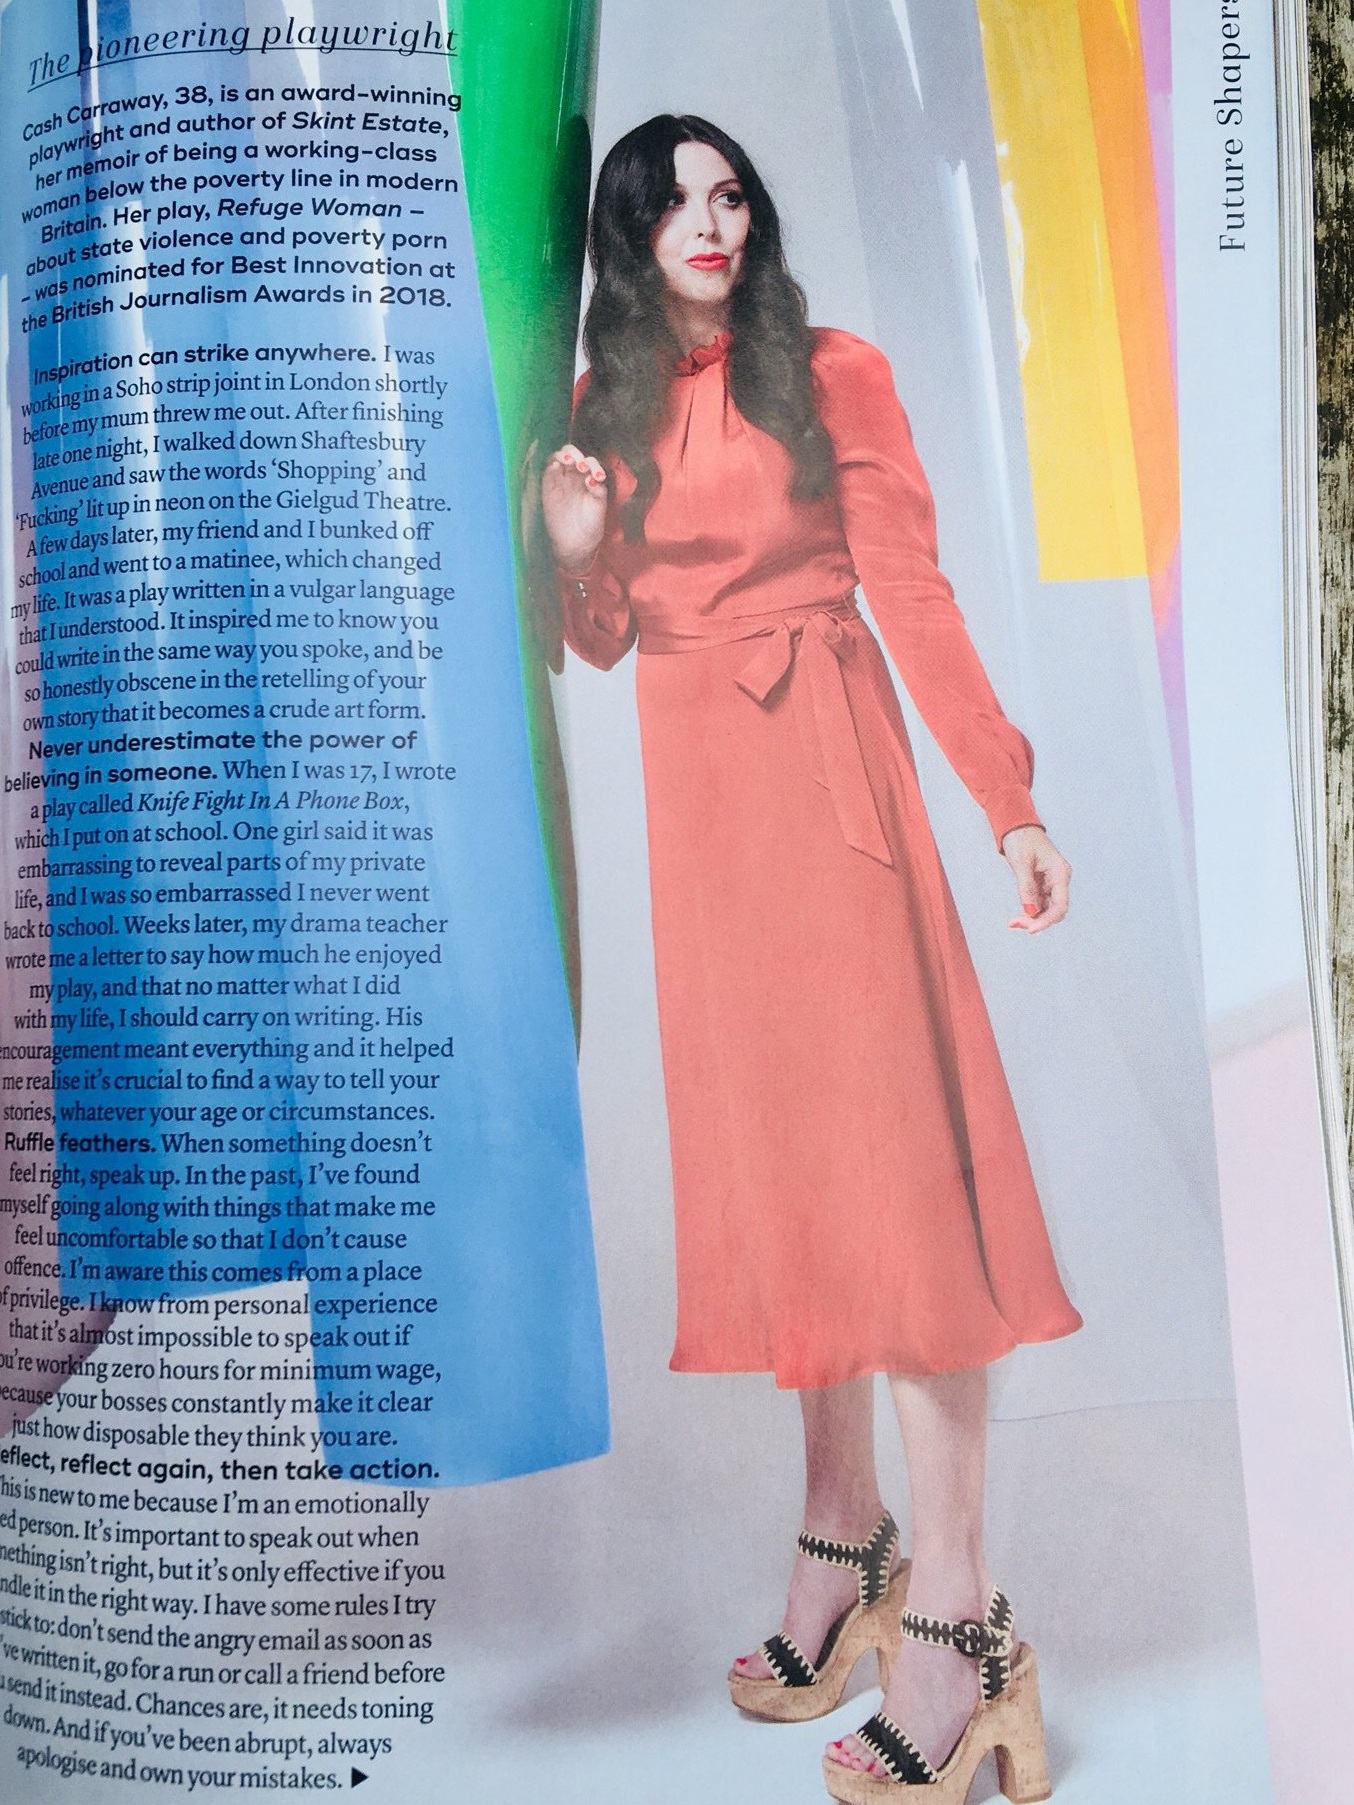 Cash Carraway in Marie Claire October 2019 issue. Future Shapers 2019.